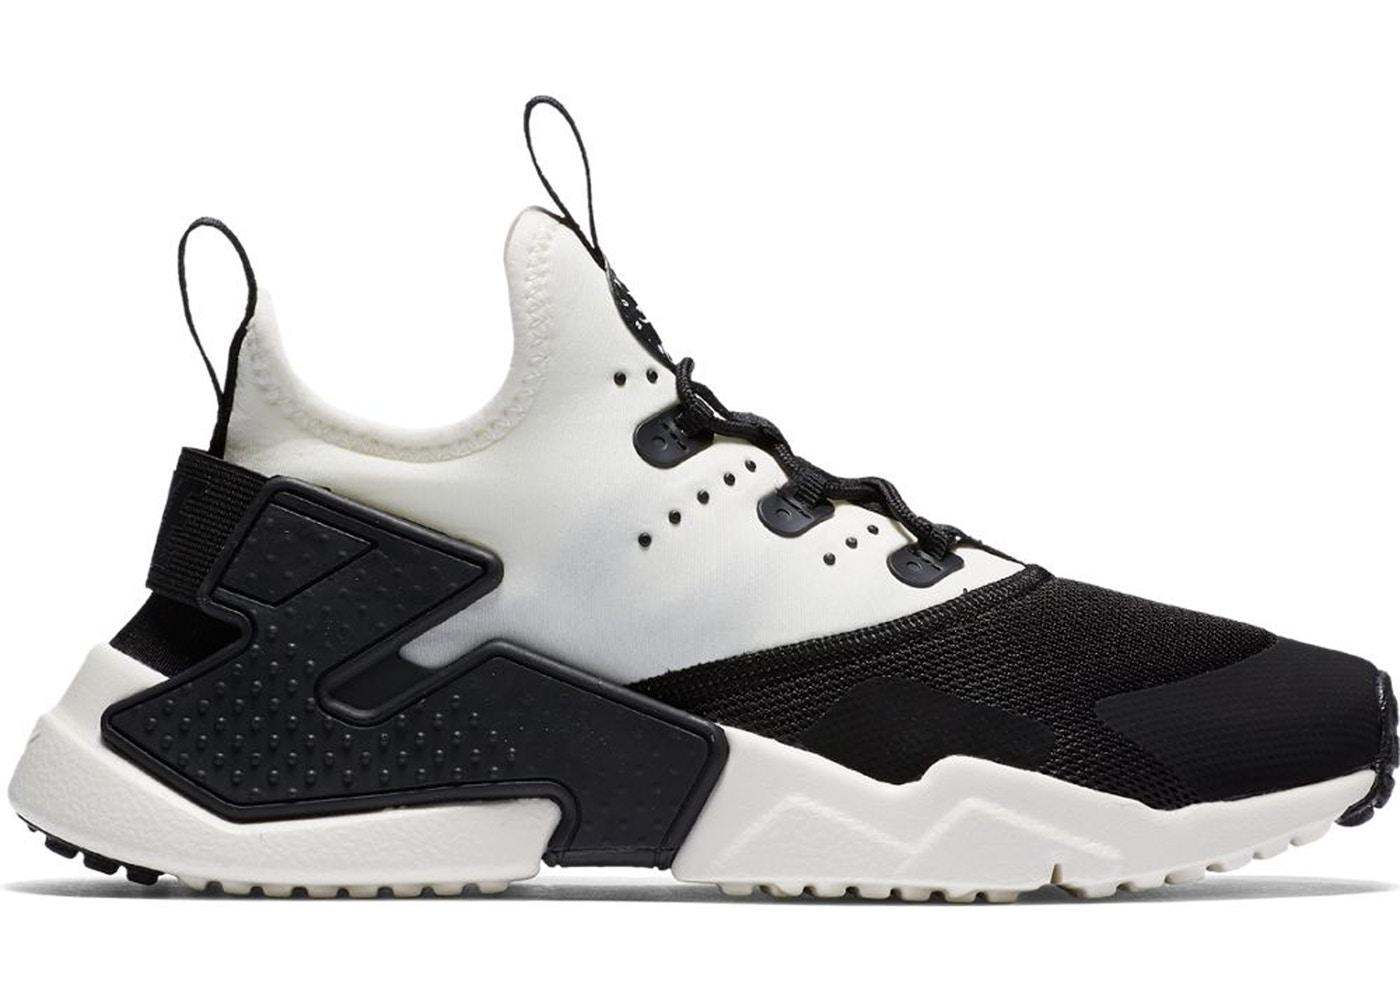 c337d5899df0 Nike Huarache Drift Black White (GS) - 943344-002